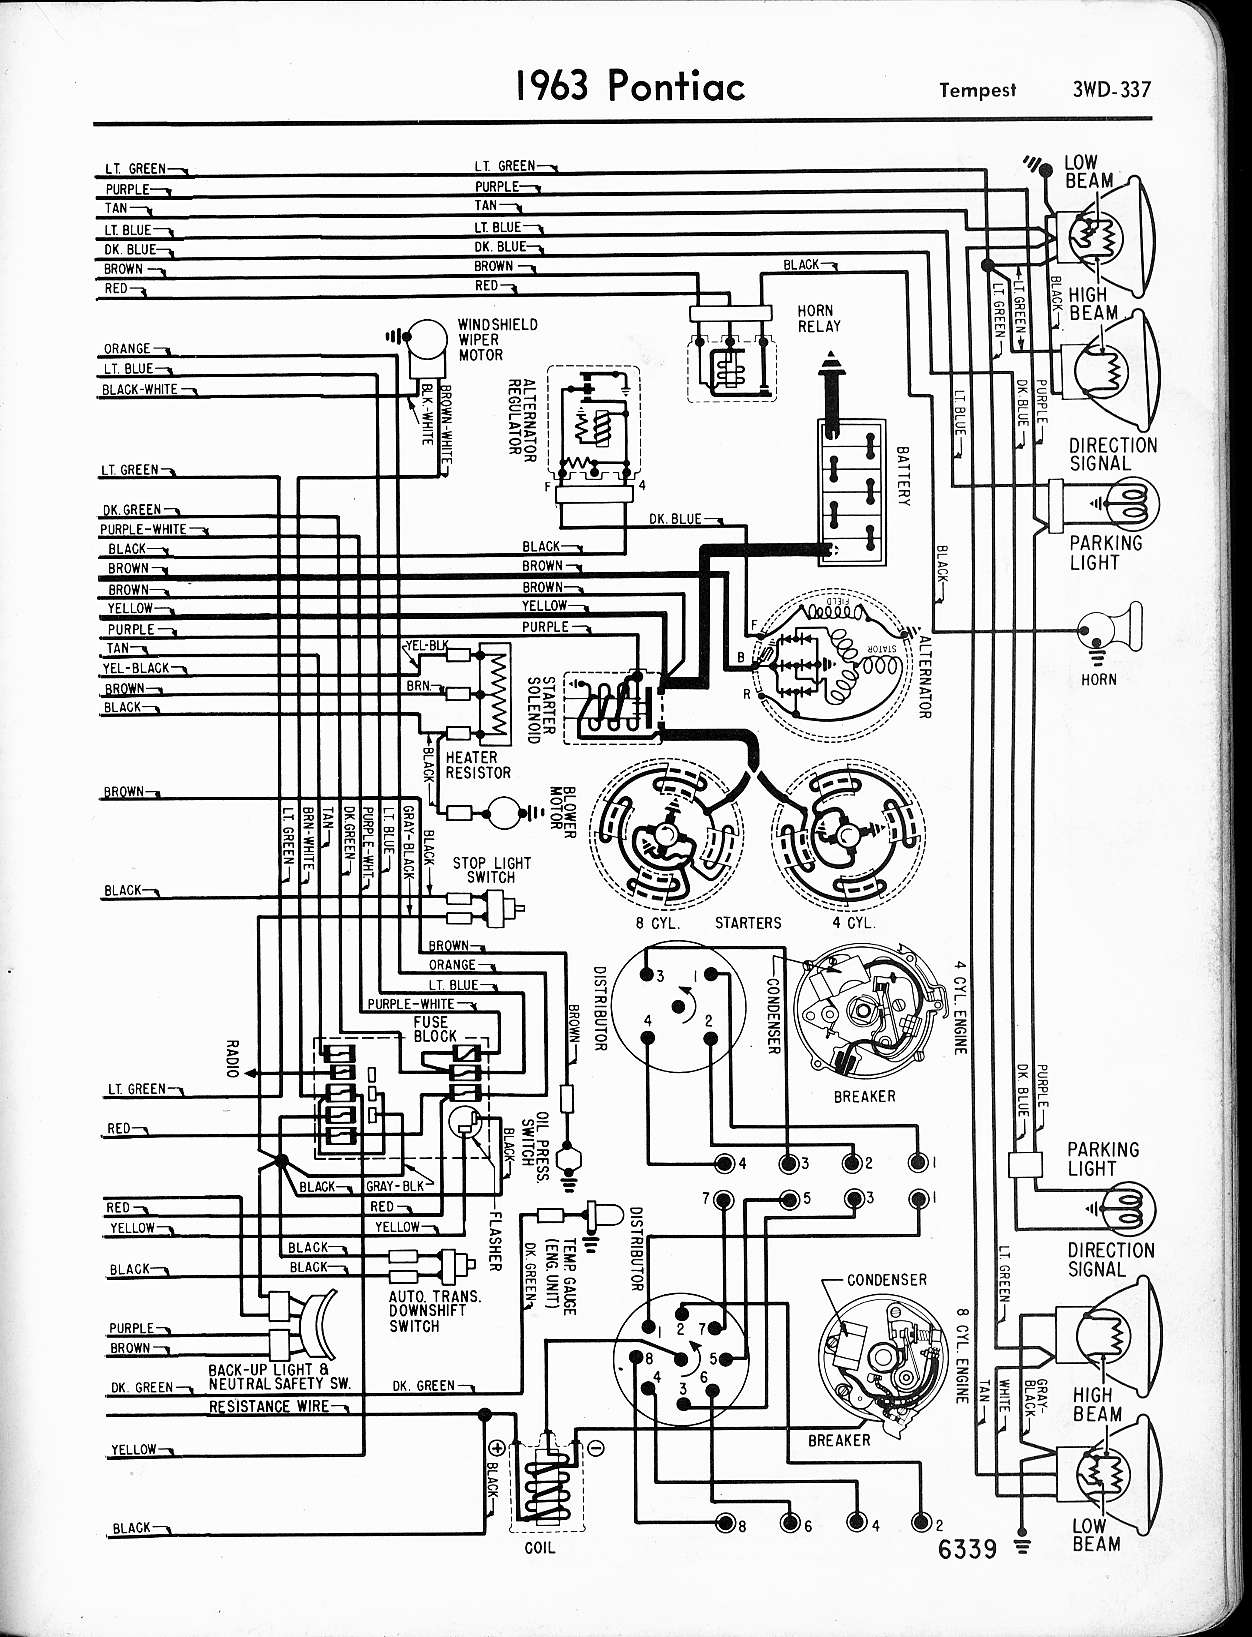 1996 Dodge Ram 1500 Radio Wiring Diagram moreover Wiring Diagram For 2014 Jeep Wrangler Radio together with Starter Location 2004 Dodge Neon together with Radio Wiring Diagram For 2000 Mitsubishi Eclipse furthermore Dodge Stereo Wiring Harness 2013. on dodge neon speaker wiring diagram